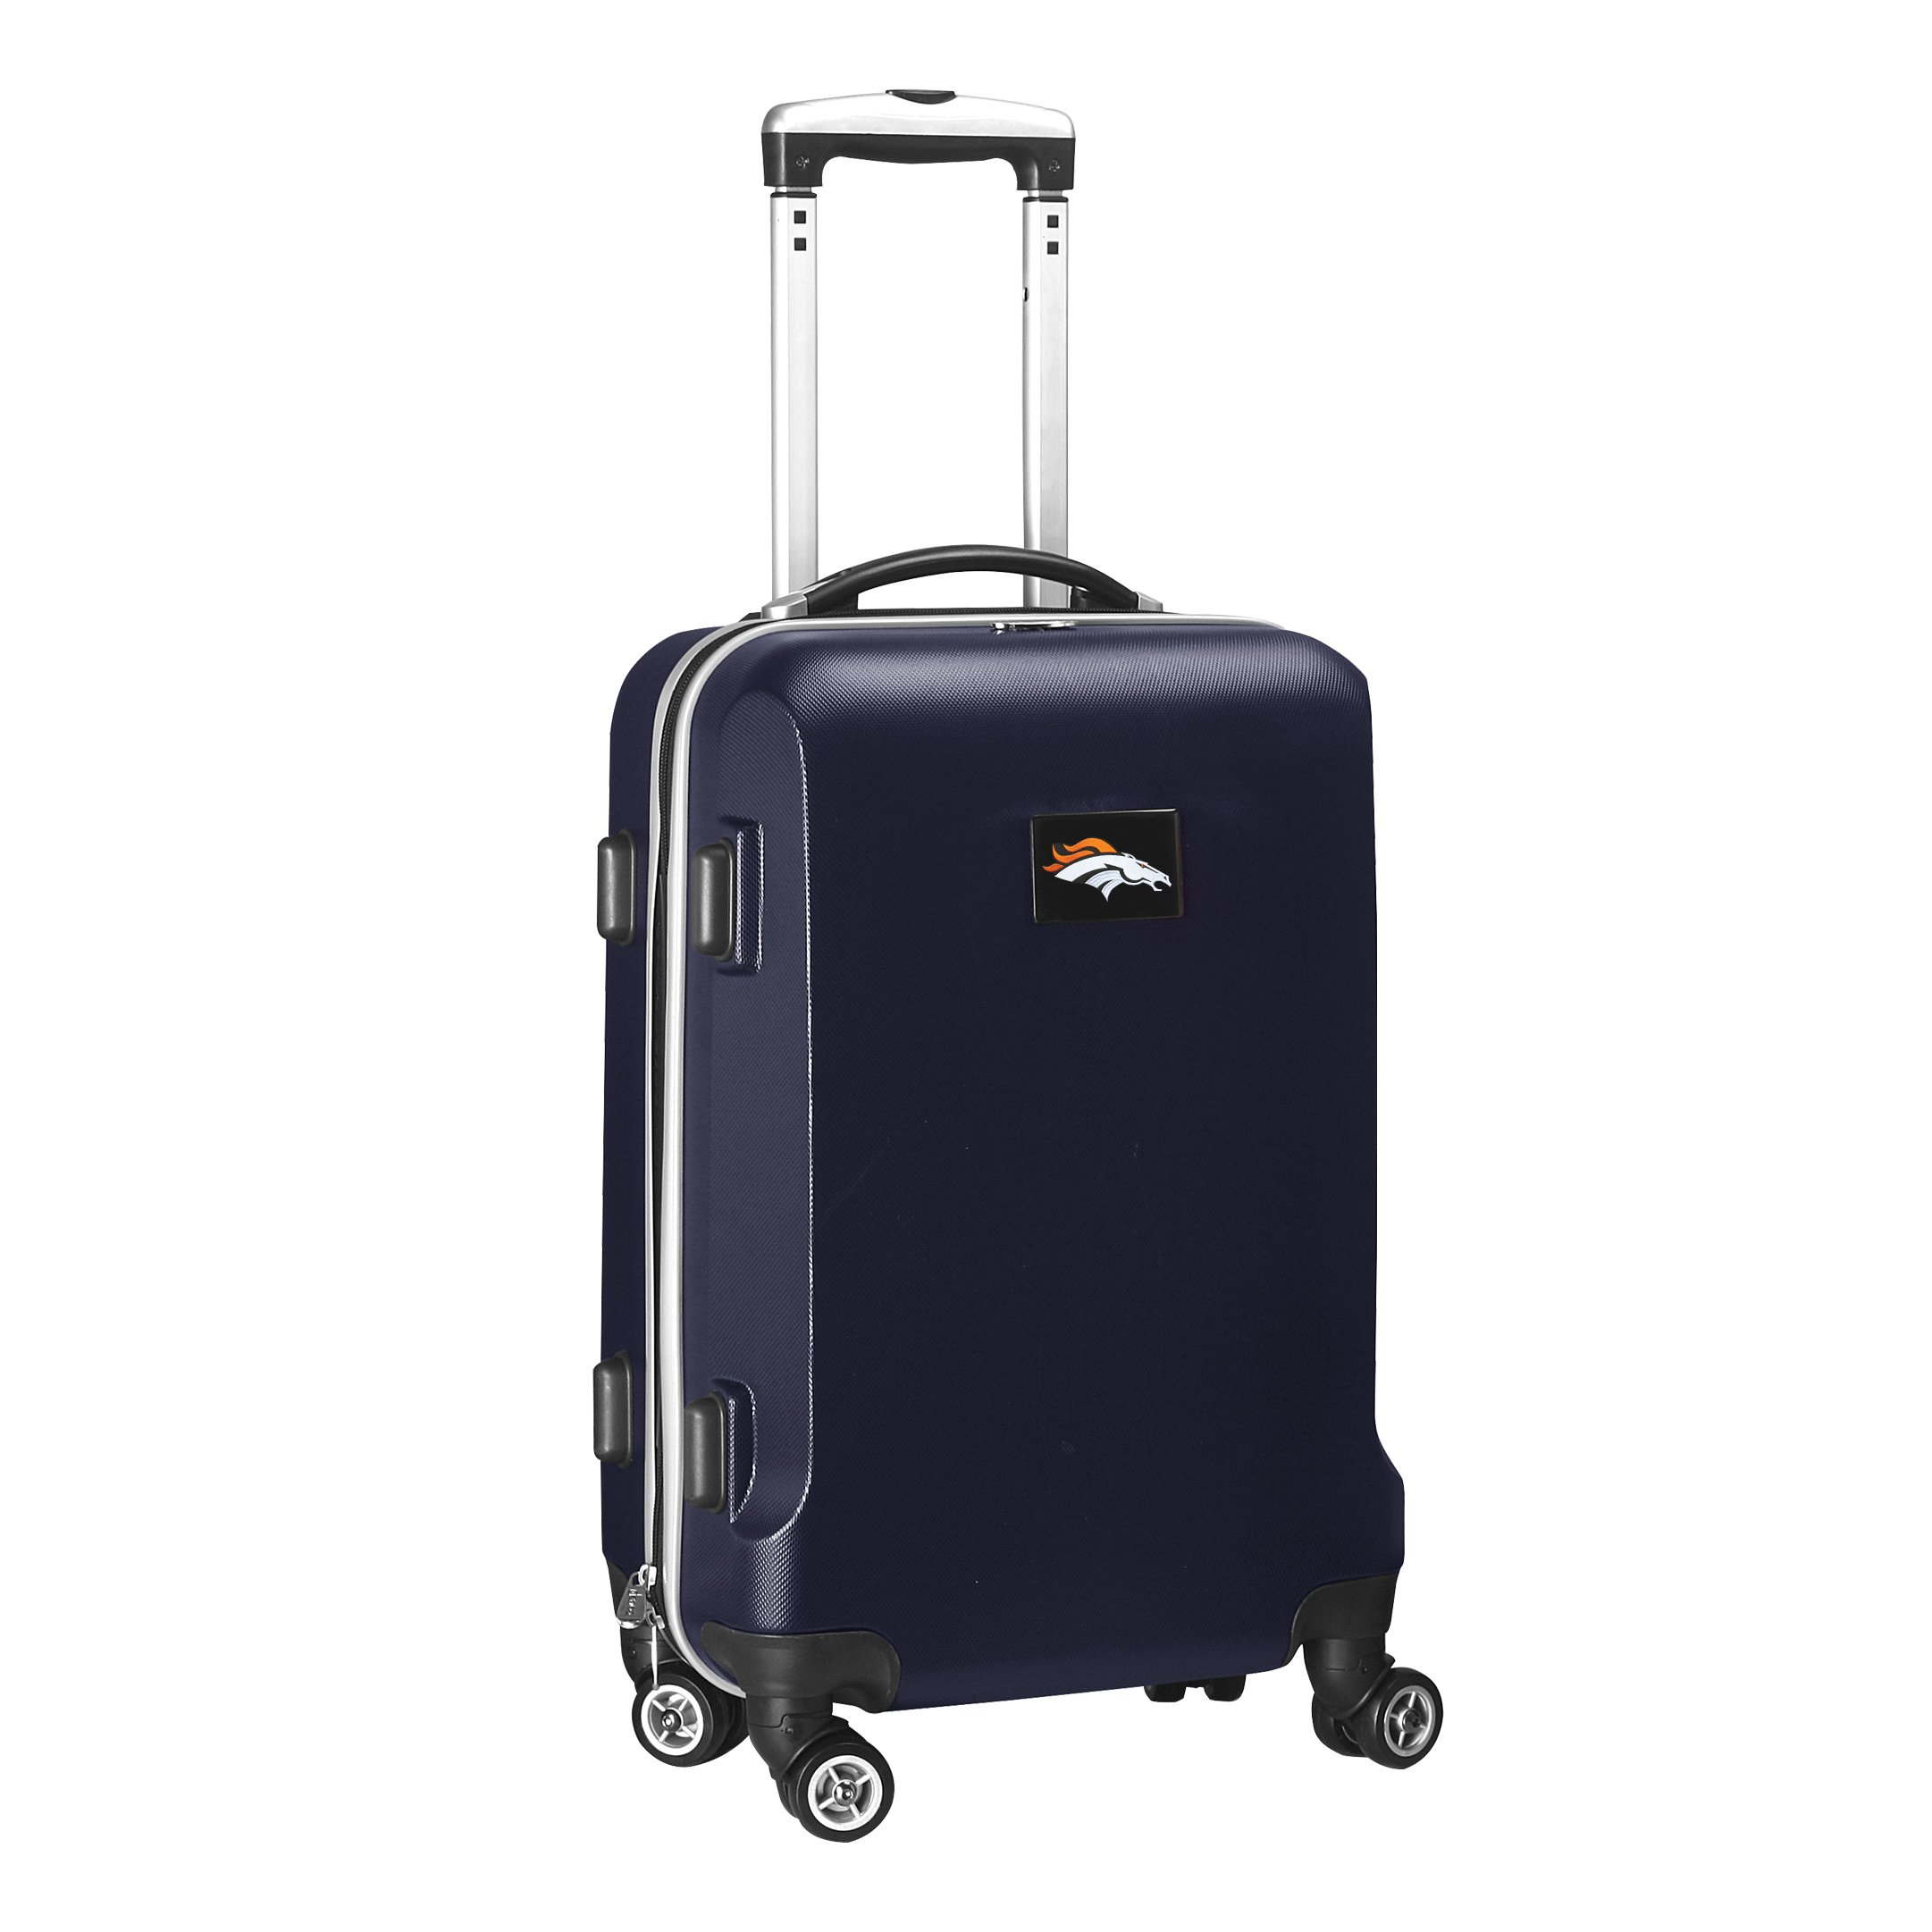 NFL Denver Broncos Carry-On Hardcase Luggage Spinner, Navy by Denco (Image #2)